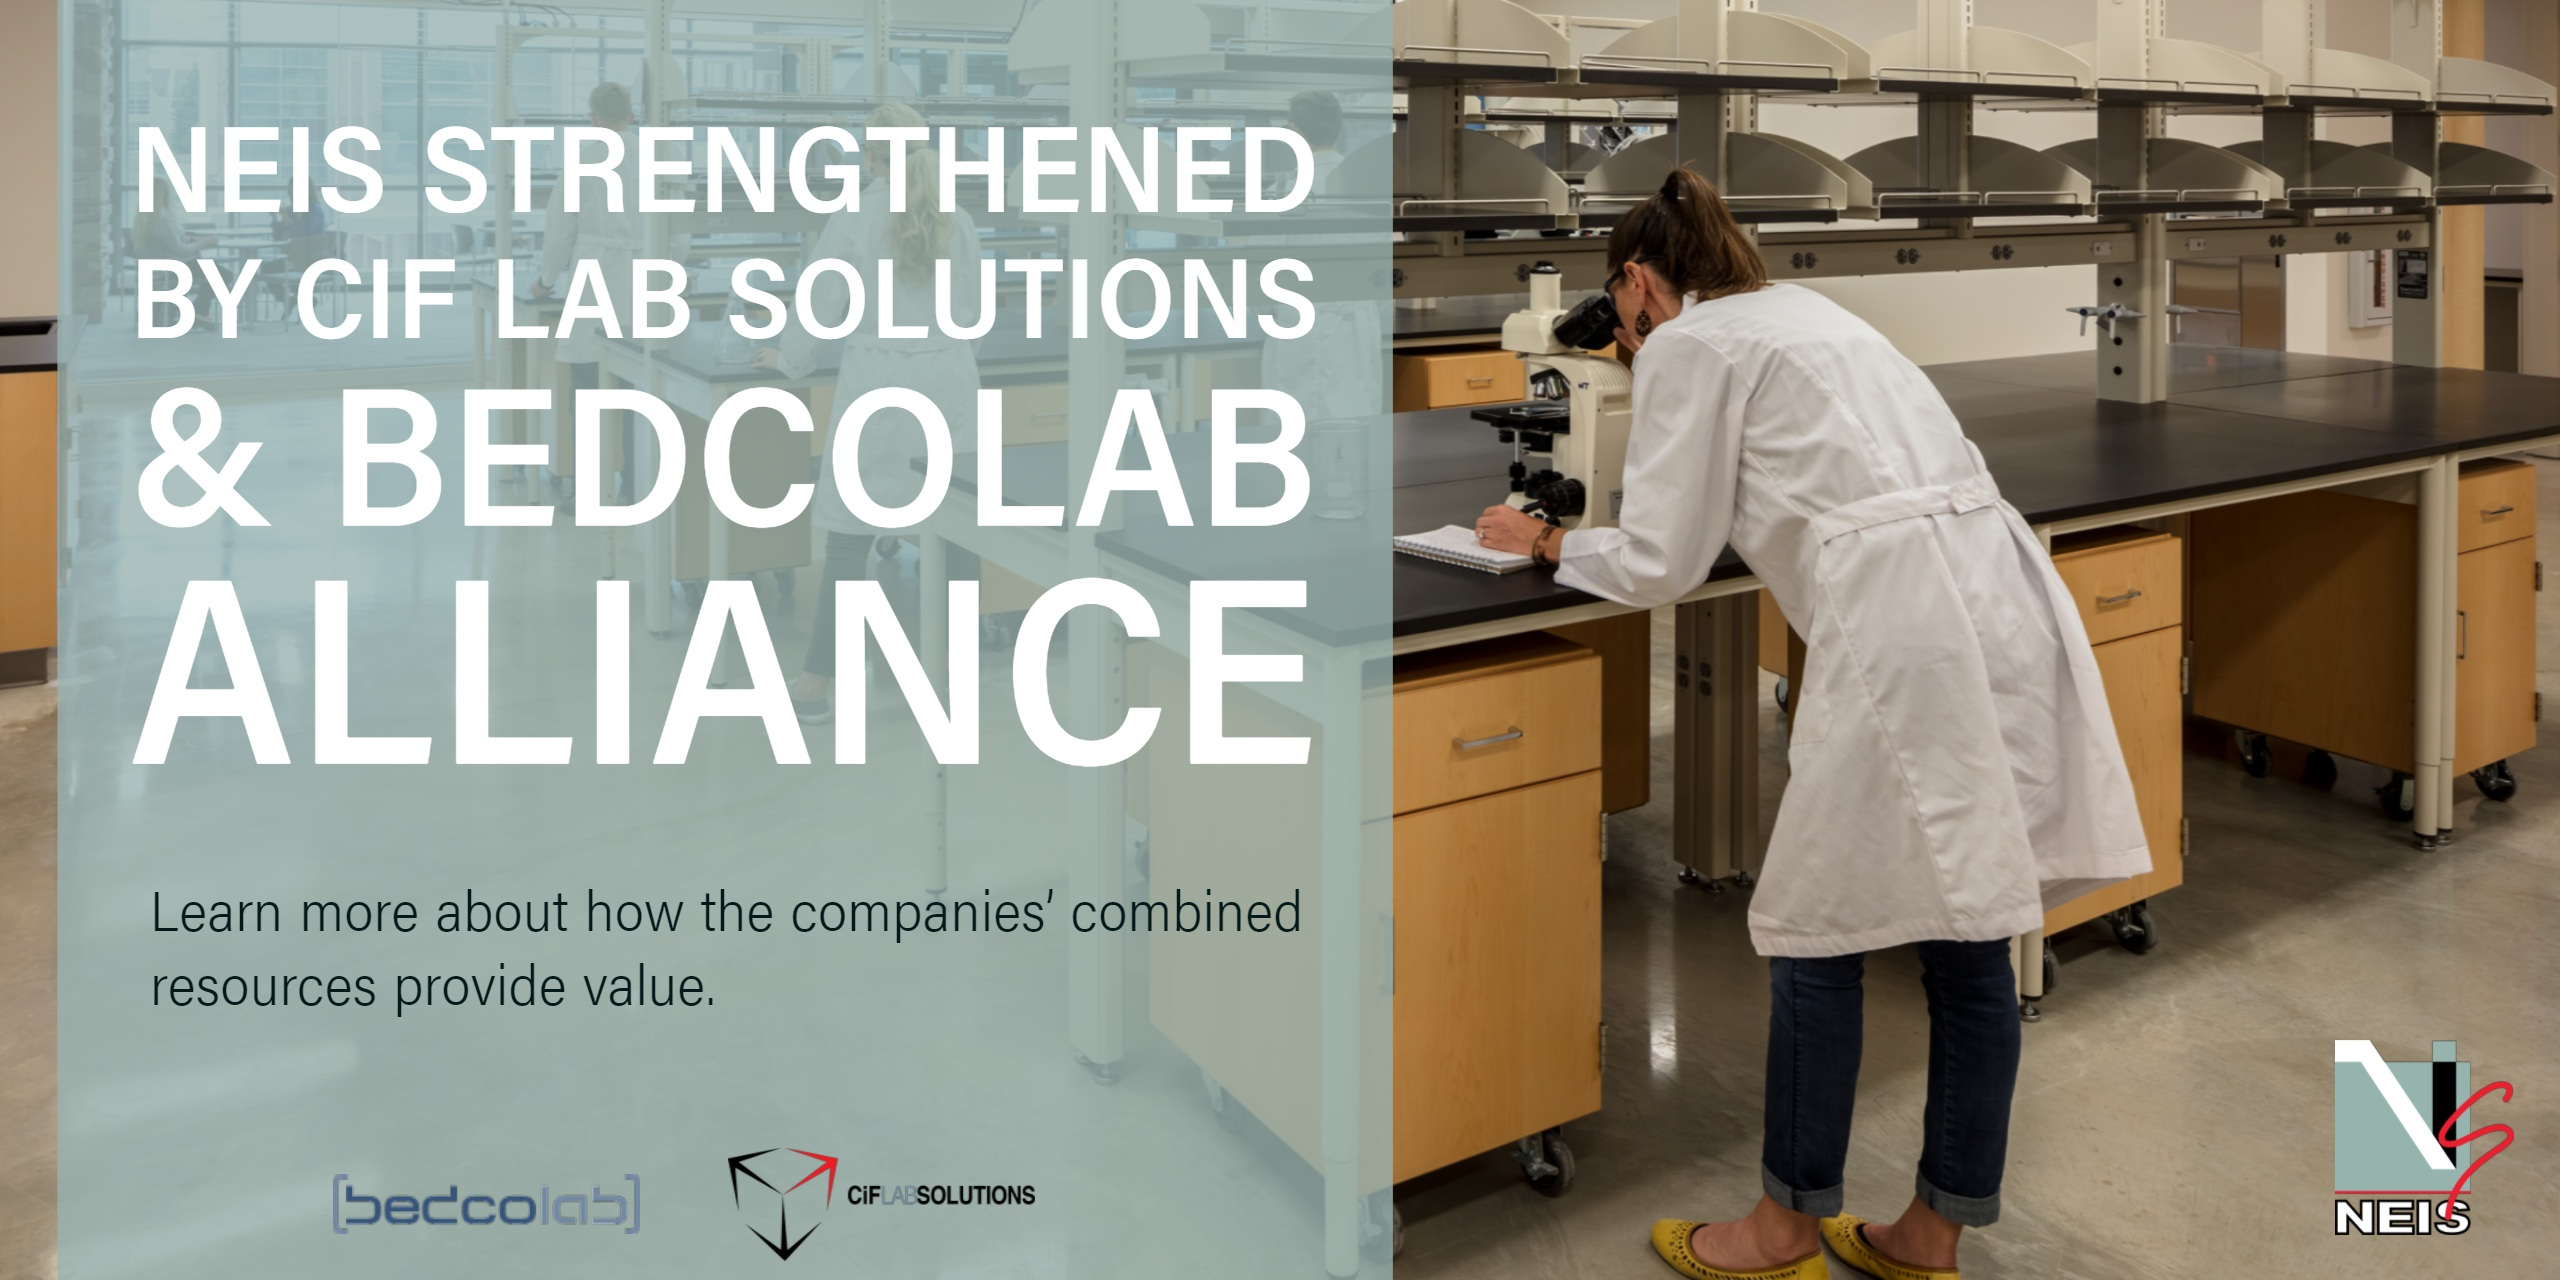 NEIS Strengthened by Bedcolab and CiF Lab Solutions Alliance - photo